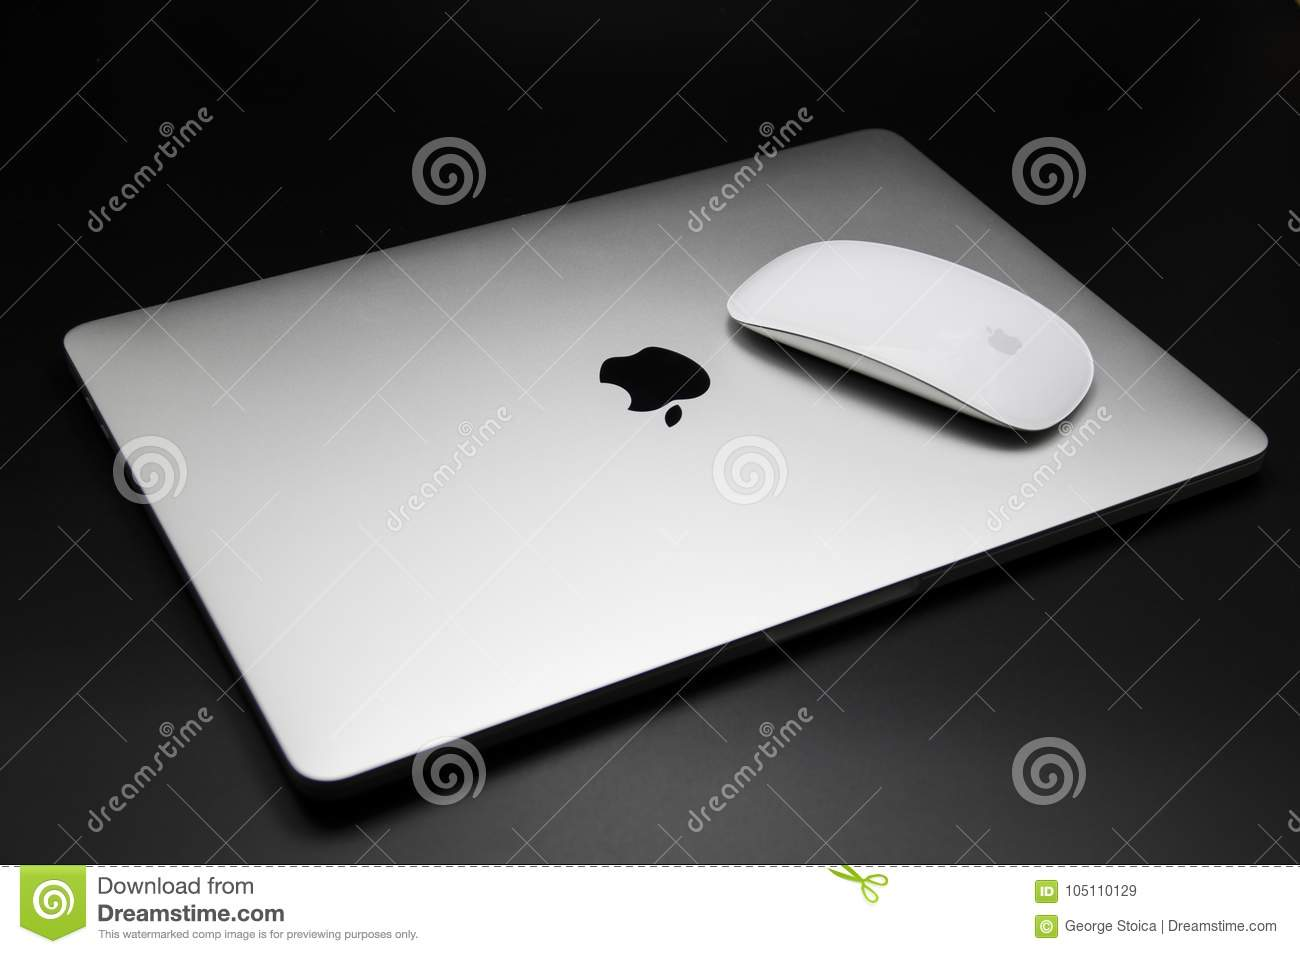 Macbook Pro 2016 Touch Bar And Mouse Editorial Stock Image - Image